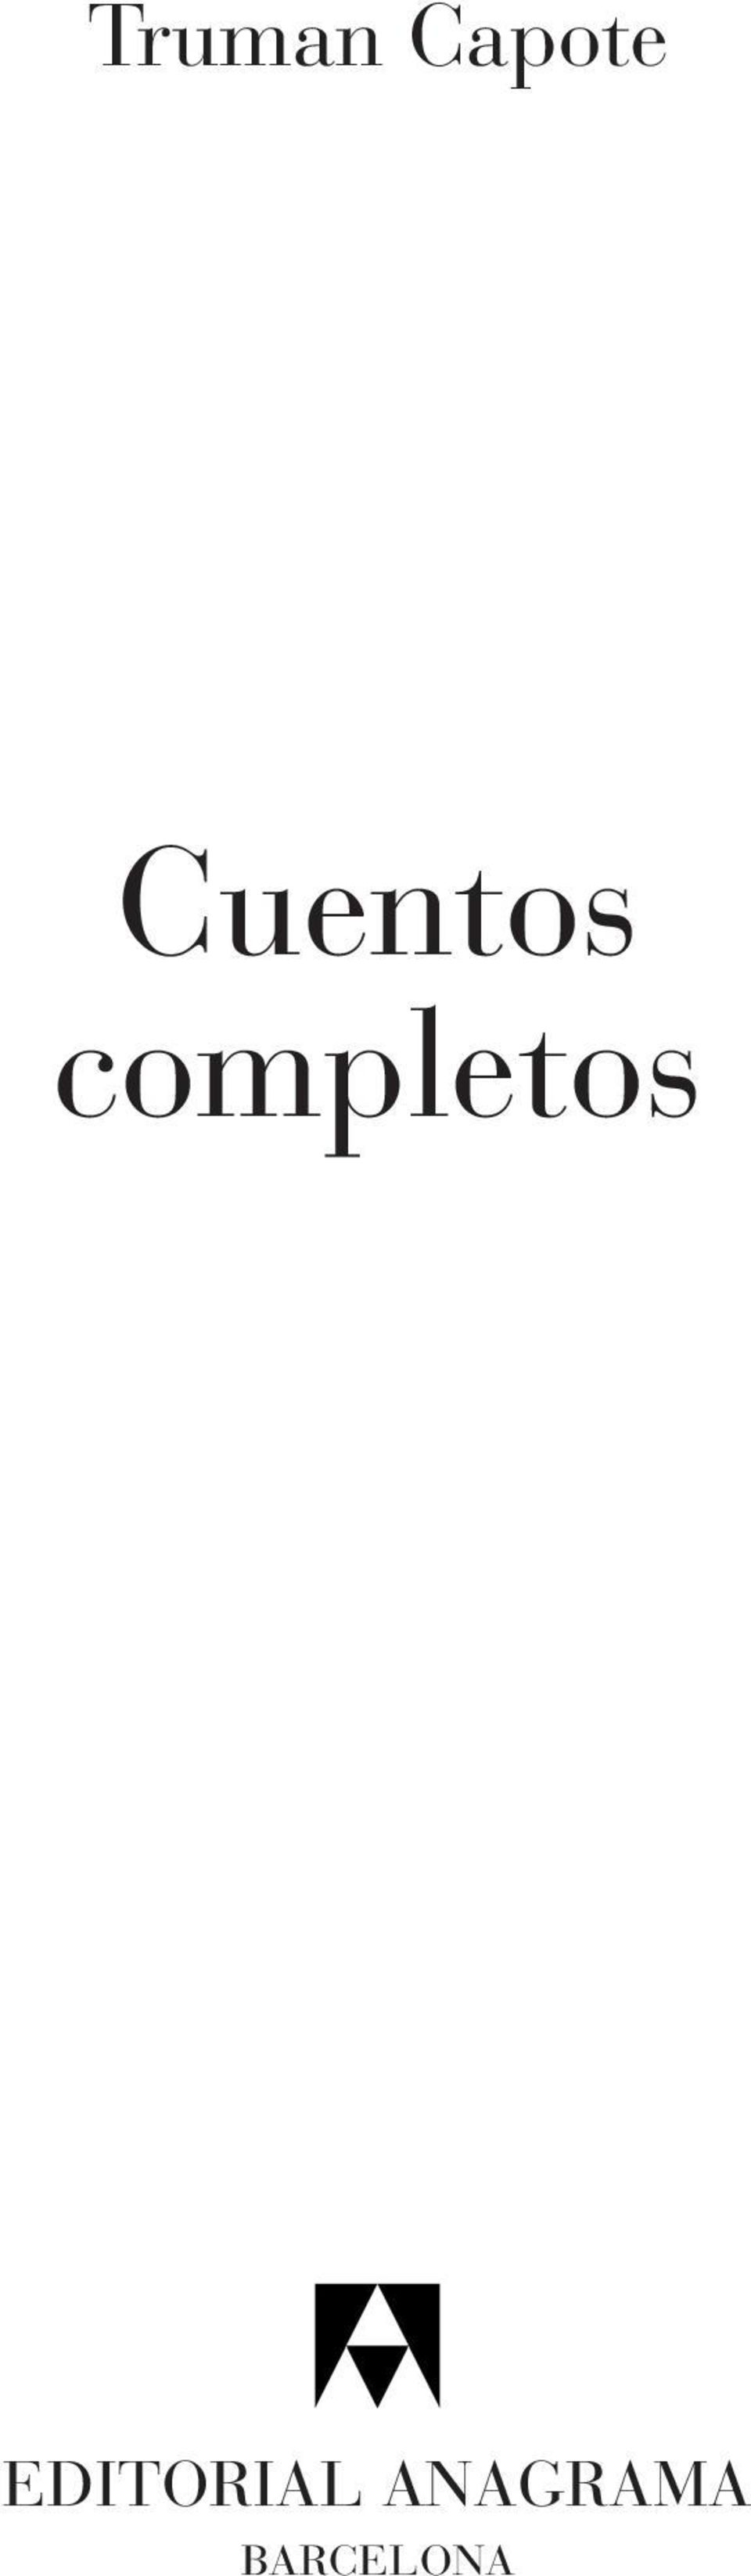 completos